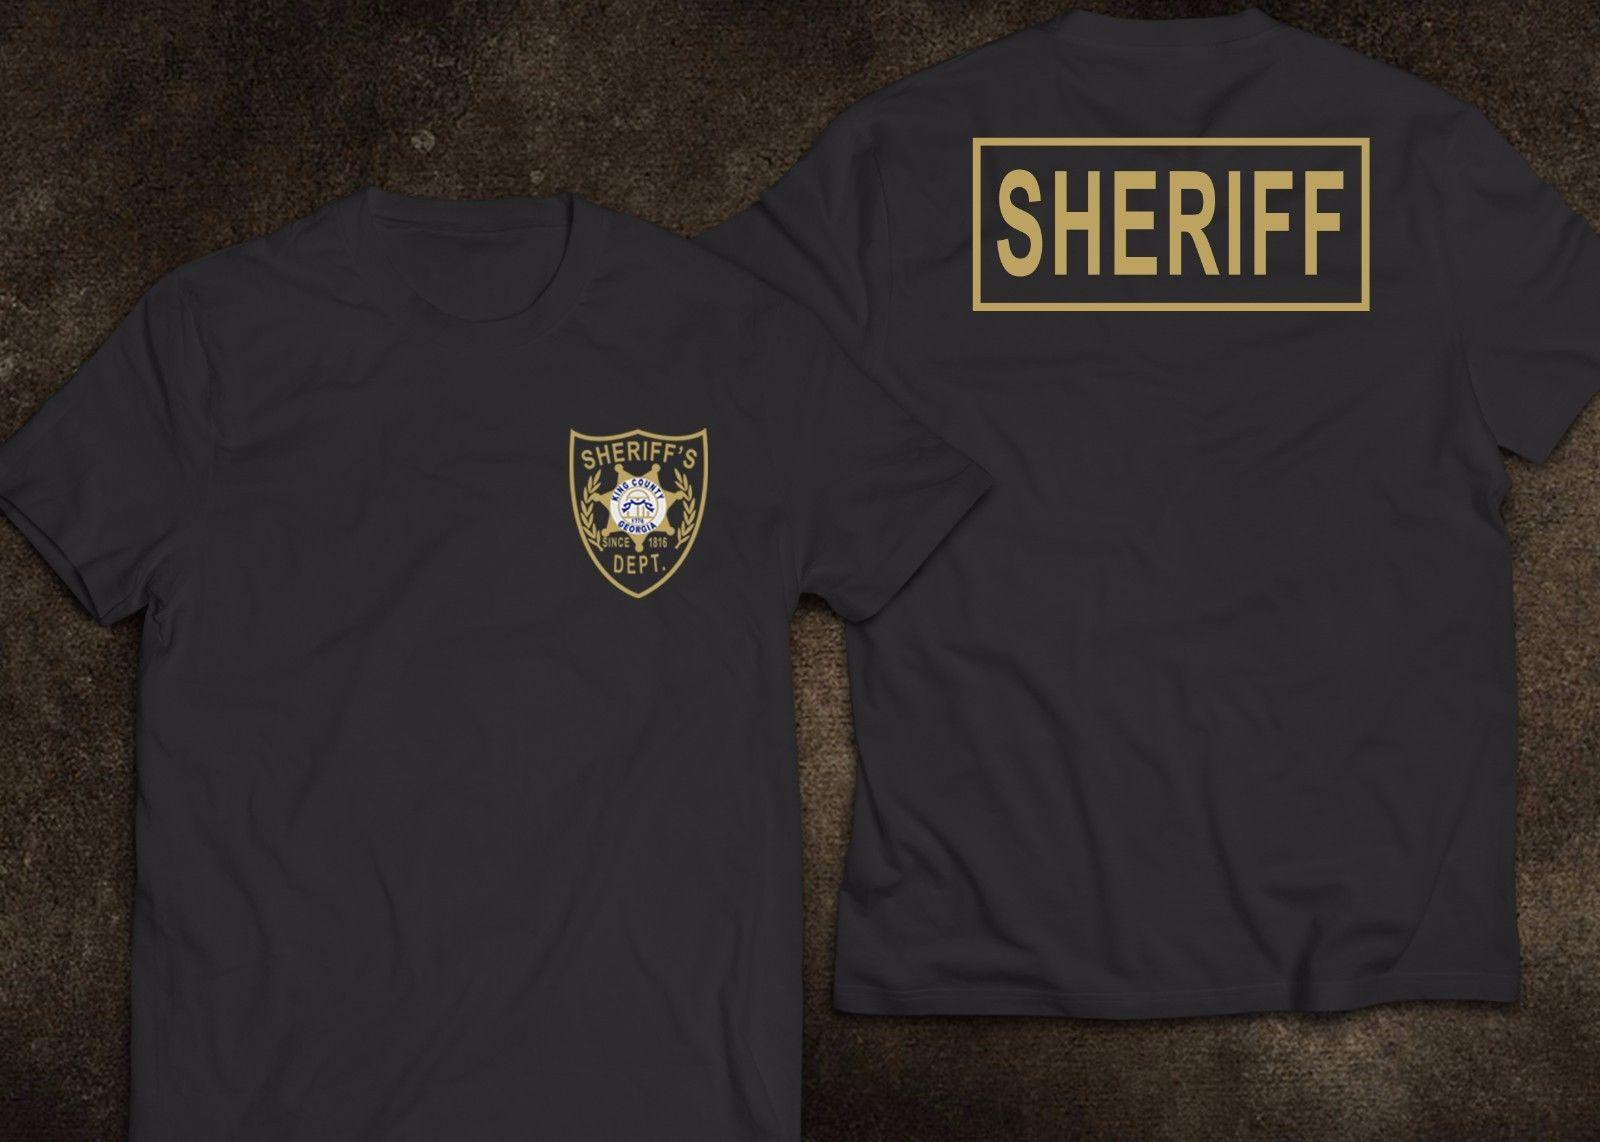 2020 моды NEW Sheriff King County Georgia Полиция США The Walking Dead Футболка Tee рубашки